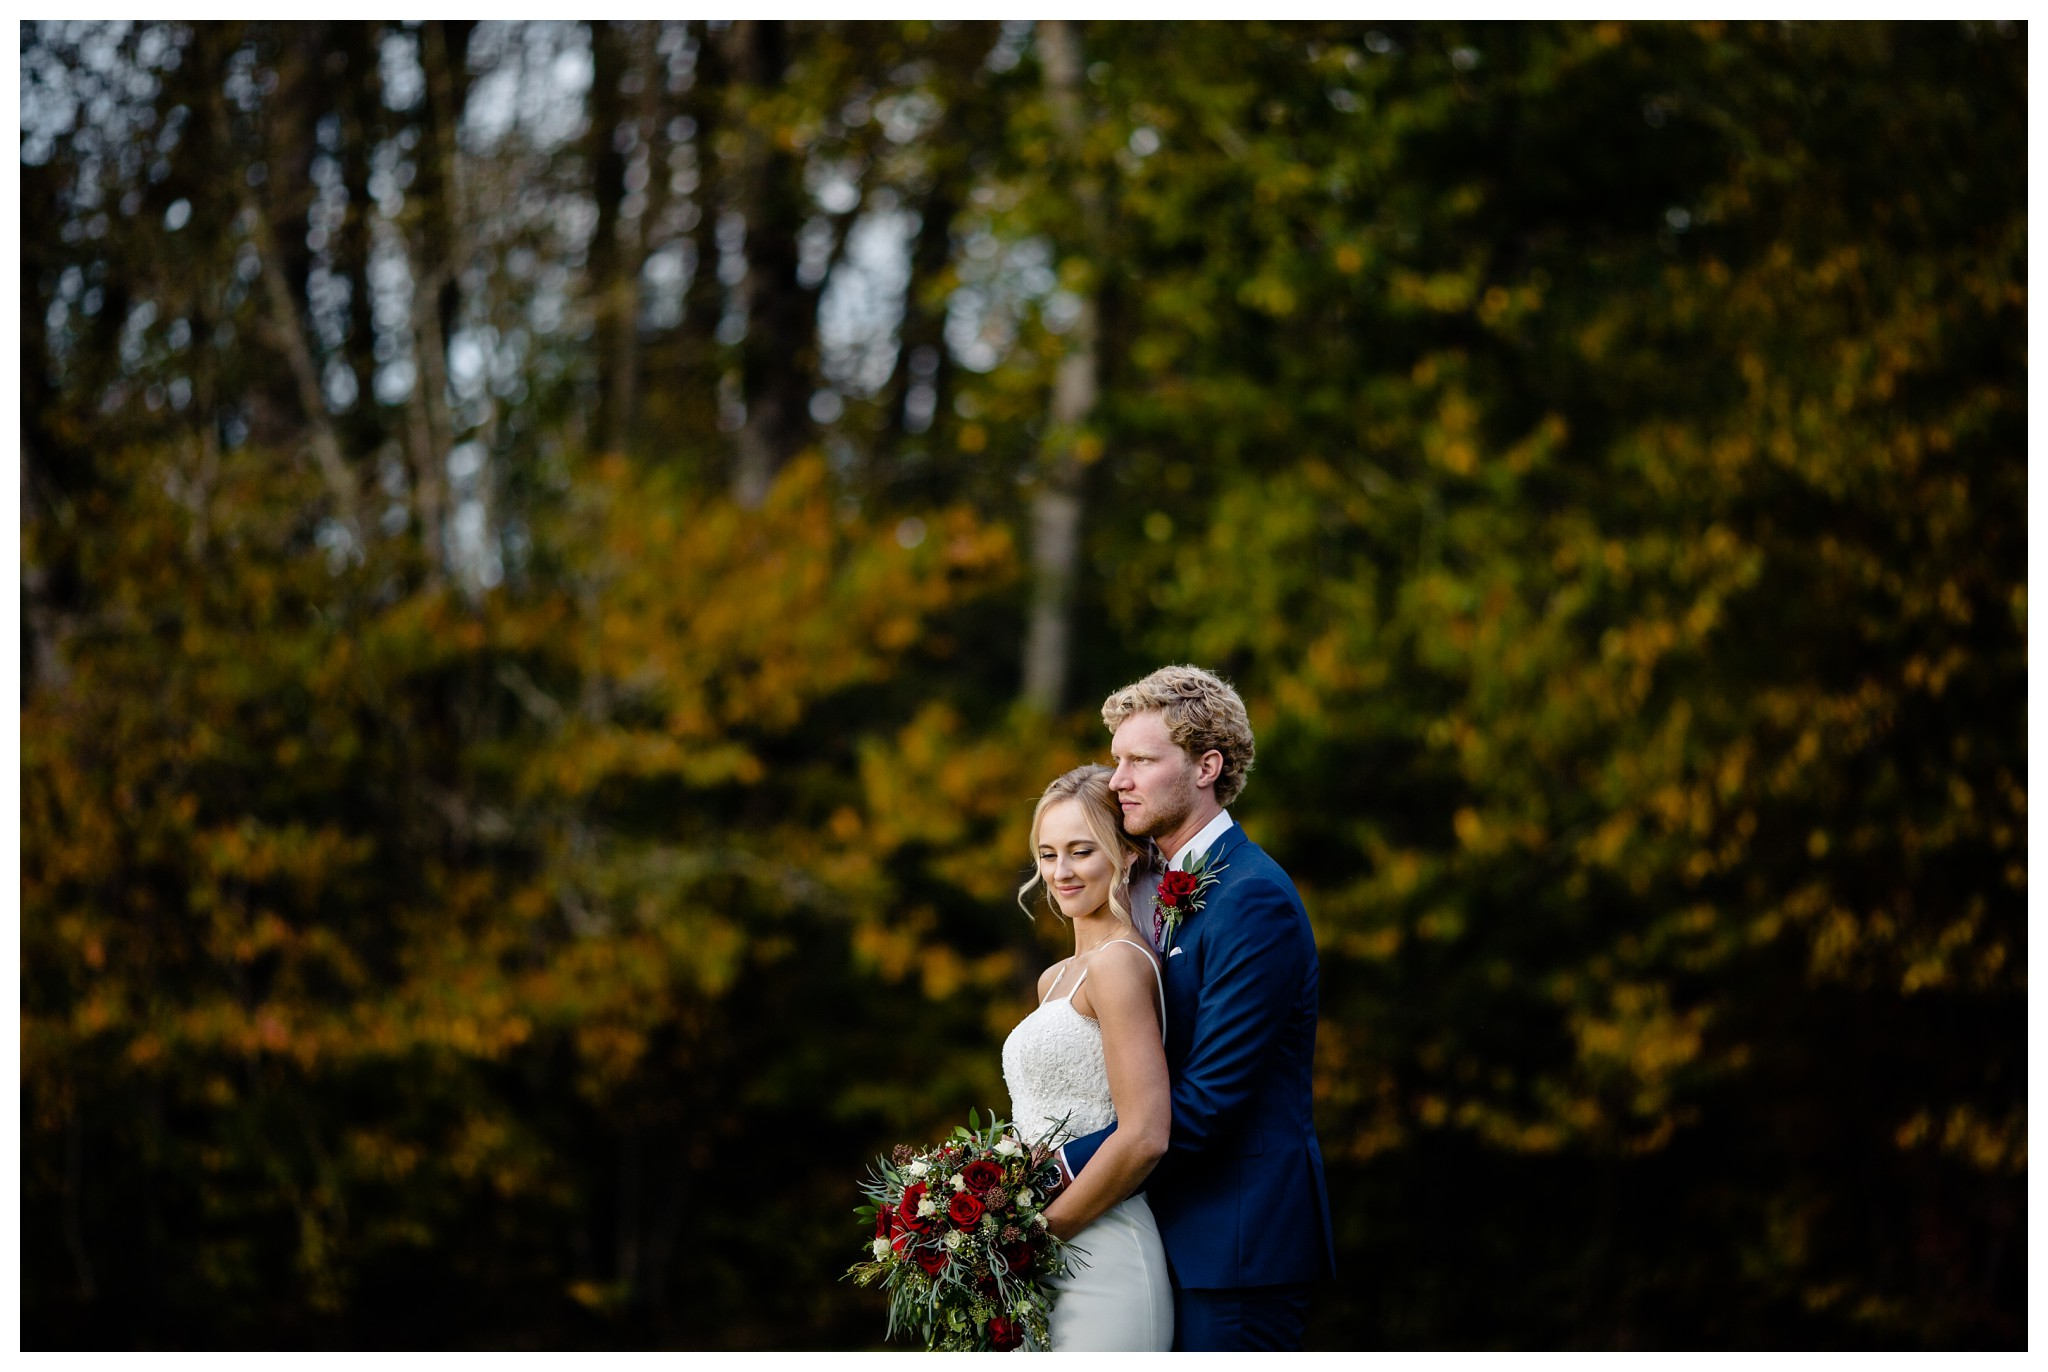 Campbell Valley Park Wedding Photographer Canadian Reformed Church Willoughby Heights Christian Fall Burgundy Navy Roses Wedding_0068.jpg